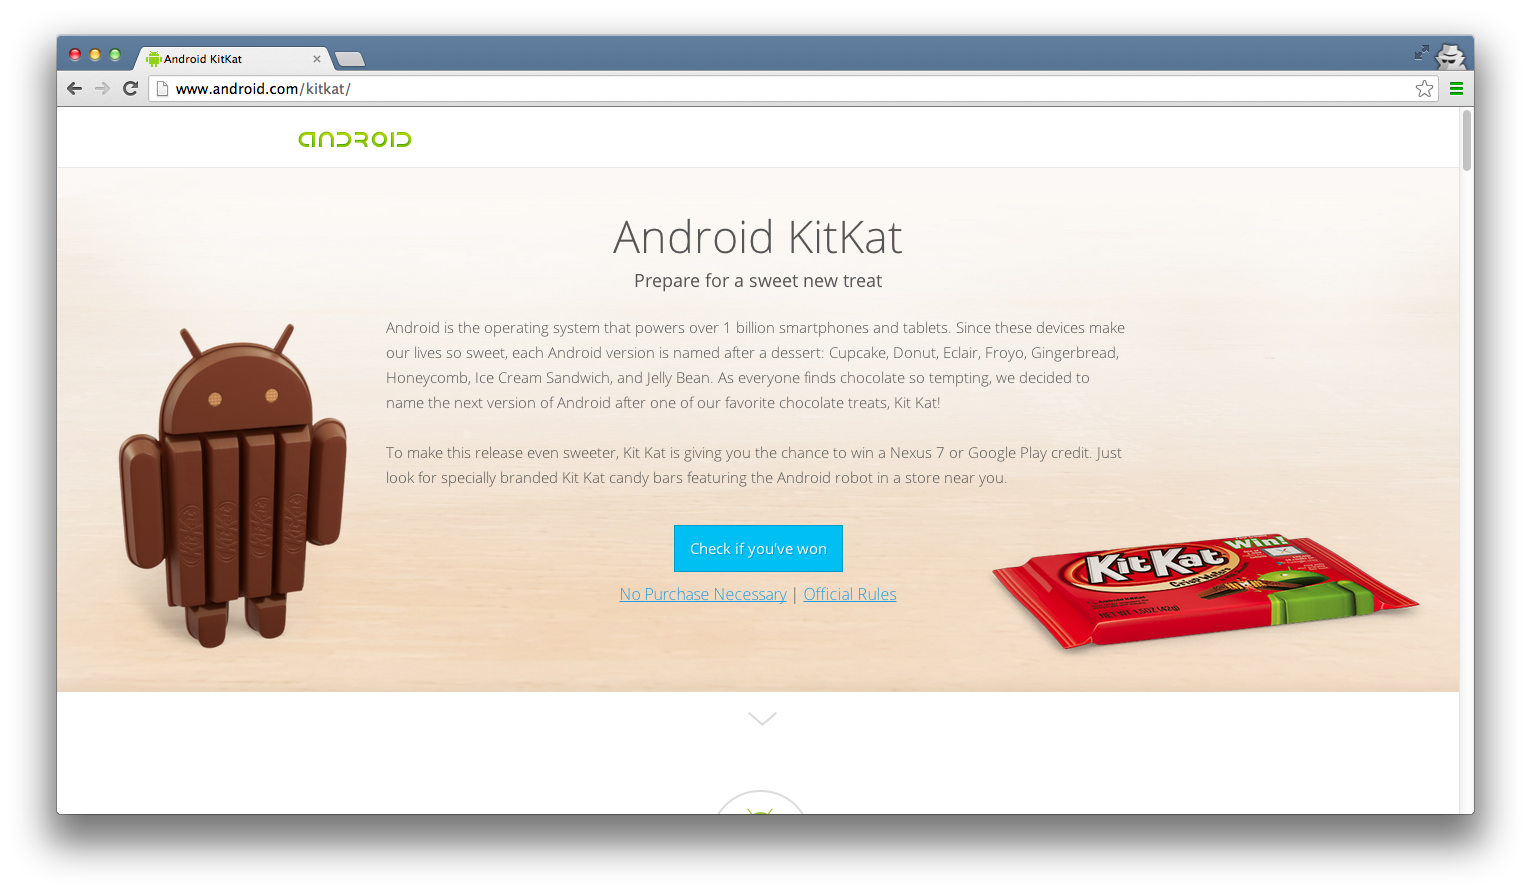 android kitkat website 2